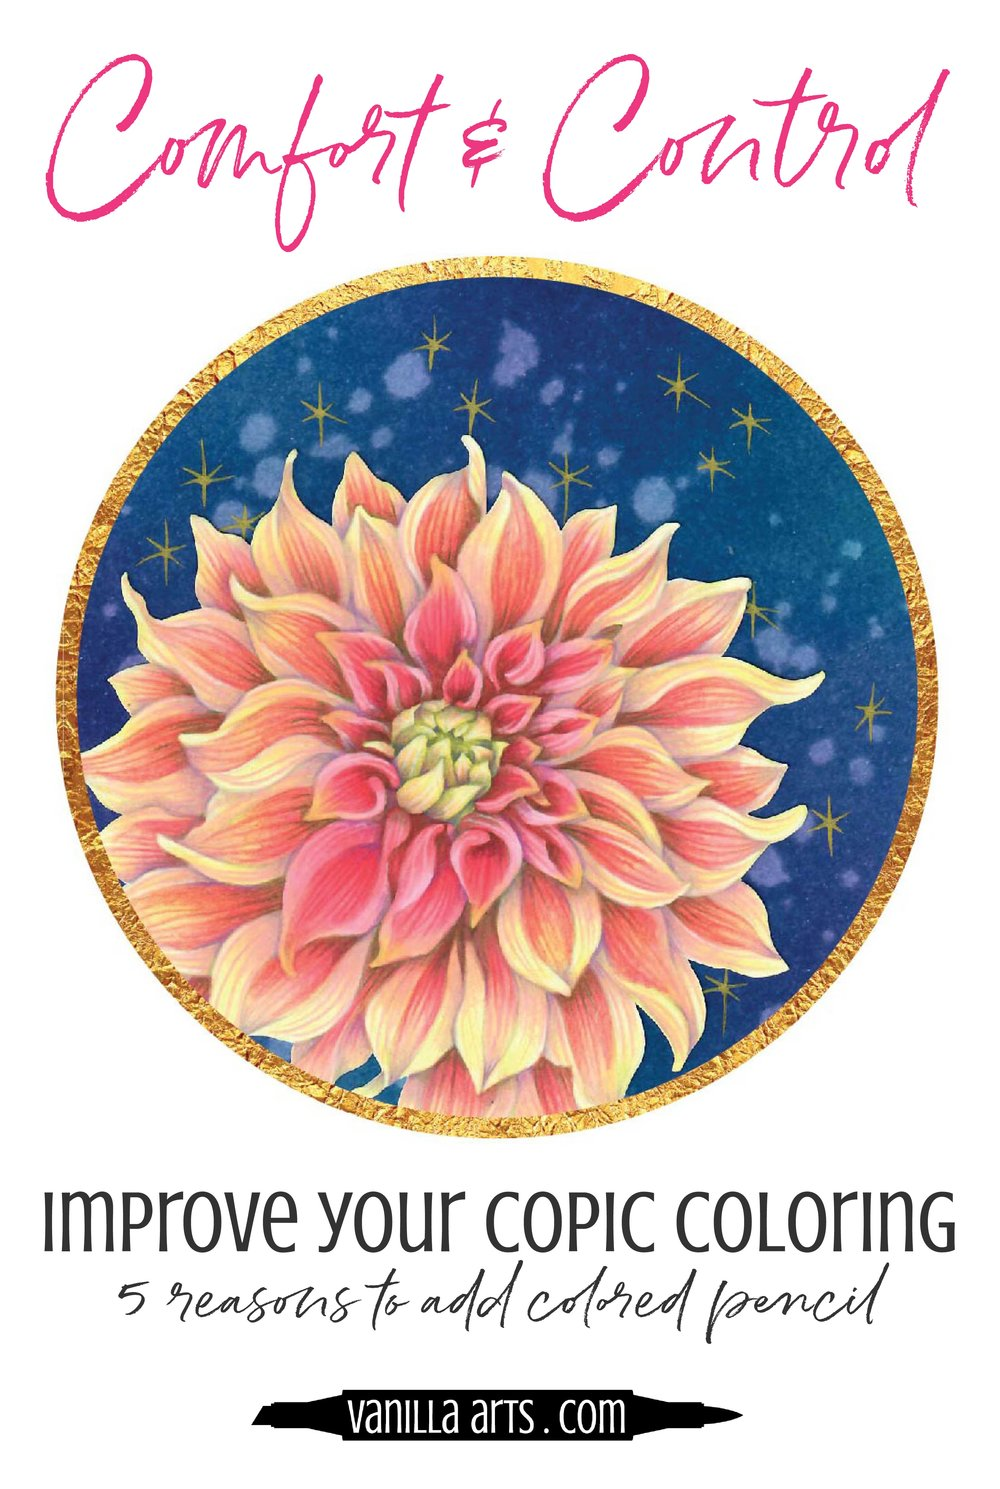 Copic Markers are amazing but they can't do everything. 5 Reasons to add colored pencil to your next marker project!| VanillaArts.com | #copic #coloredpencil #coloringtips #adultcoloring #howtocolor